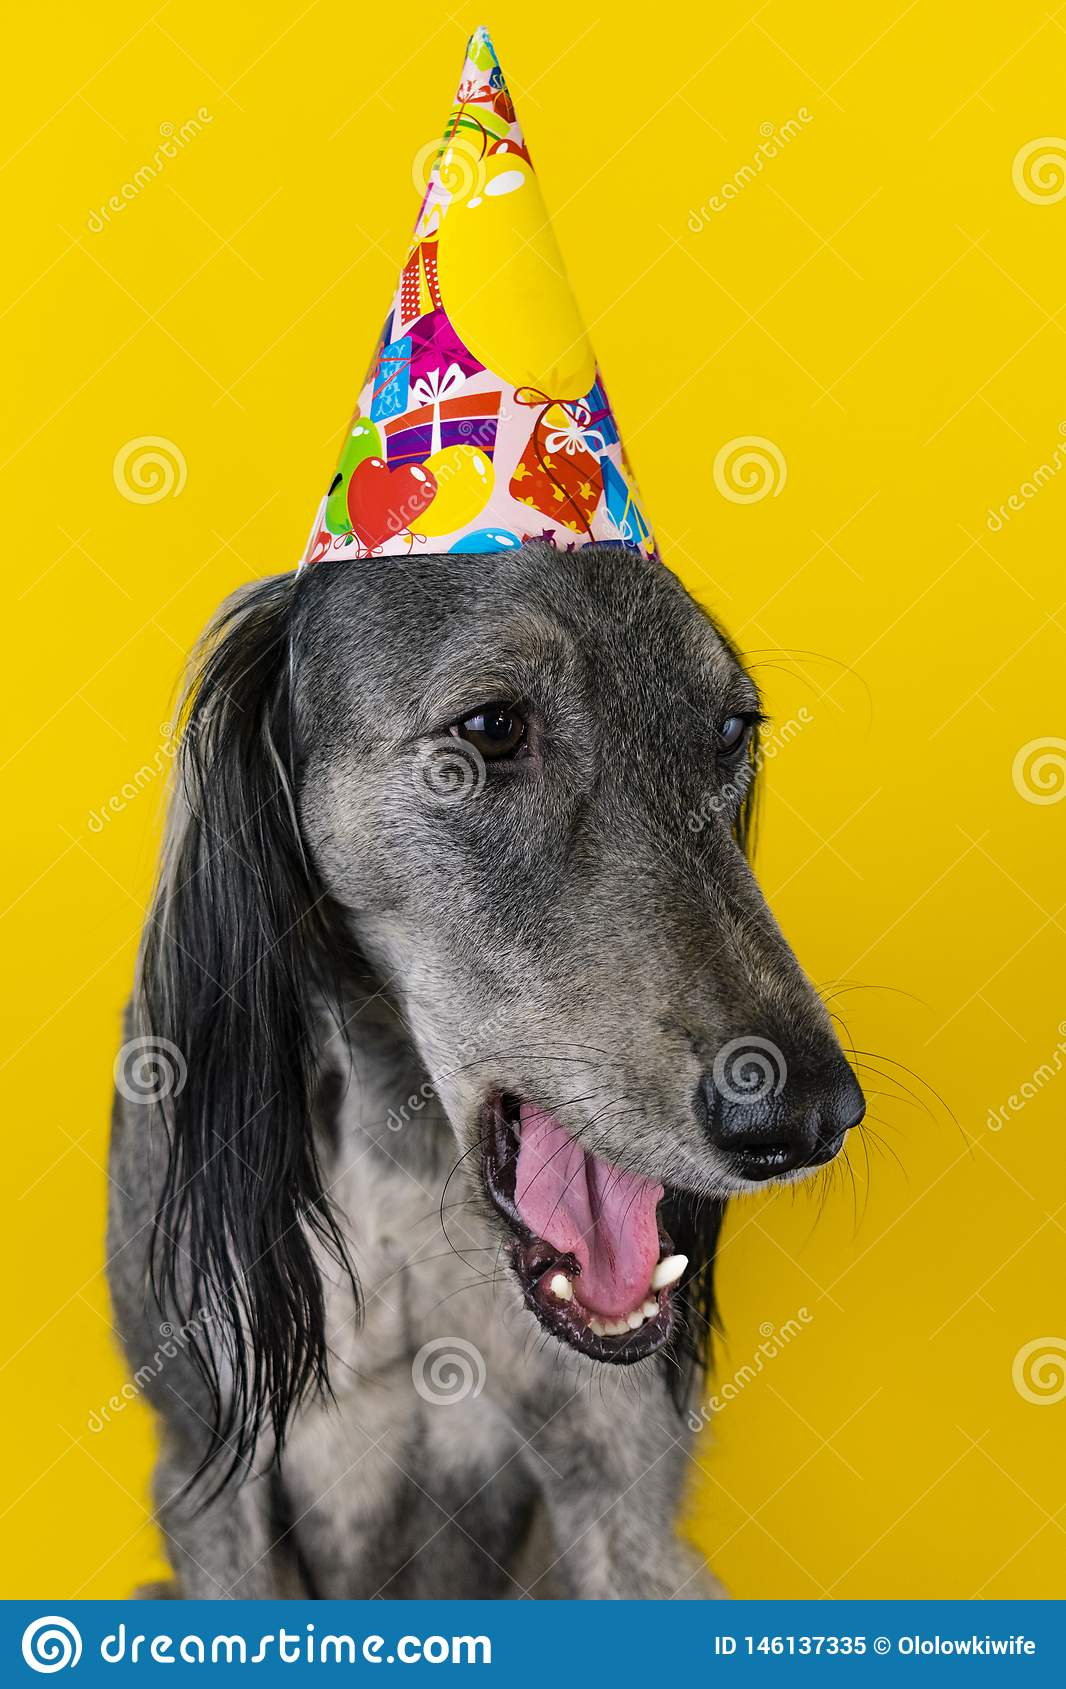 Cute dog with a birthday party hat on isolated on a yellow background. greyhound. hat with copyscpace. dog is boring